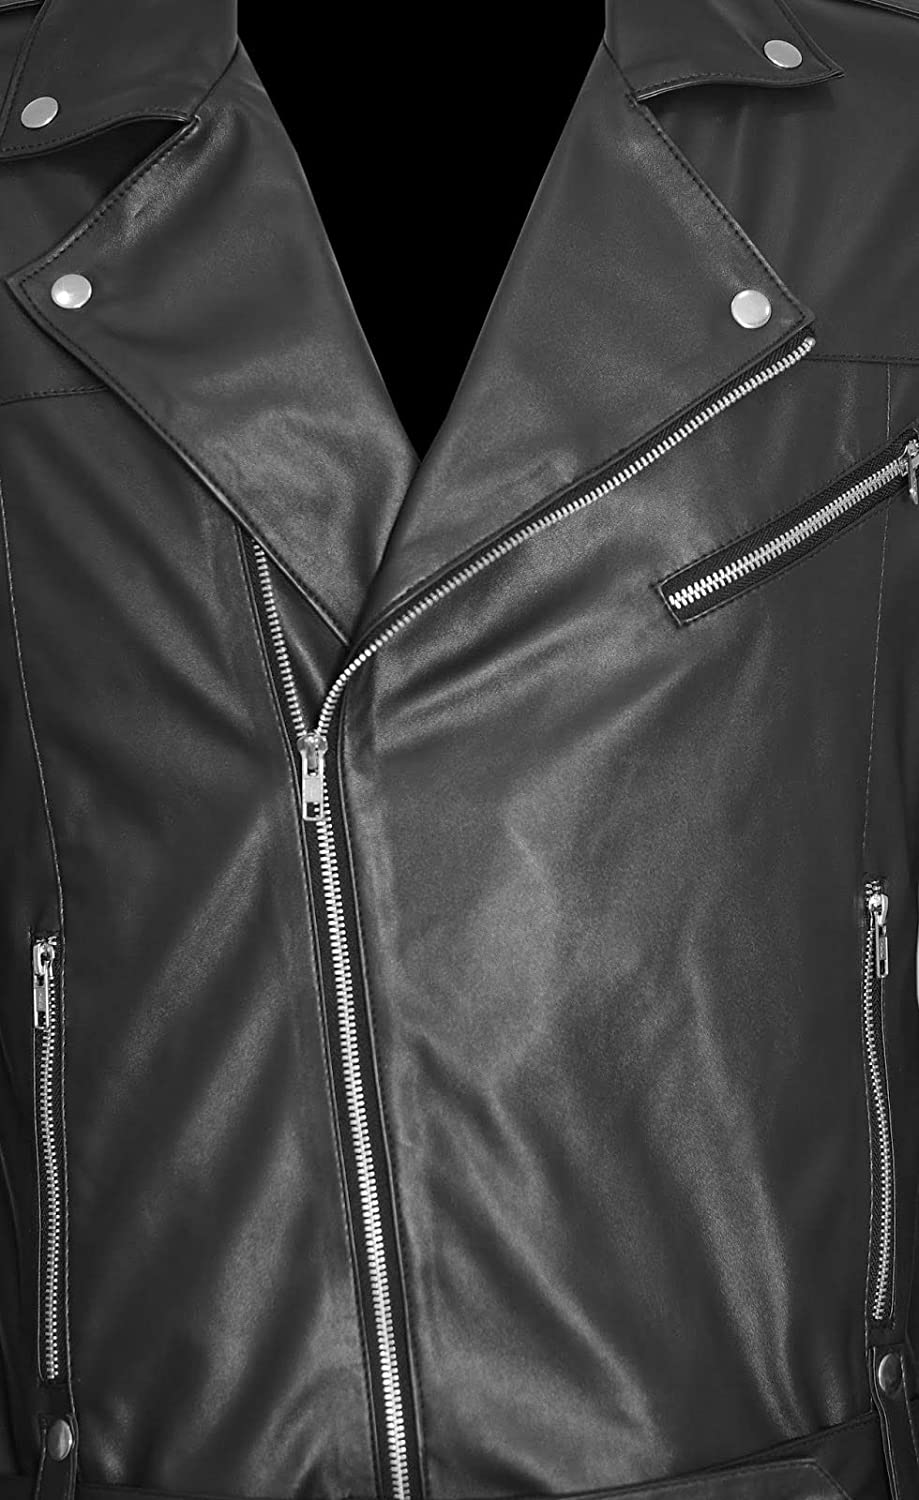 H&A Collections Freedom Mens Black Biker Leather Jacket - Big and tall leather jacket Black